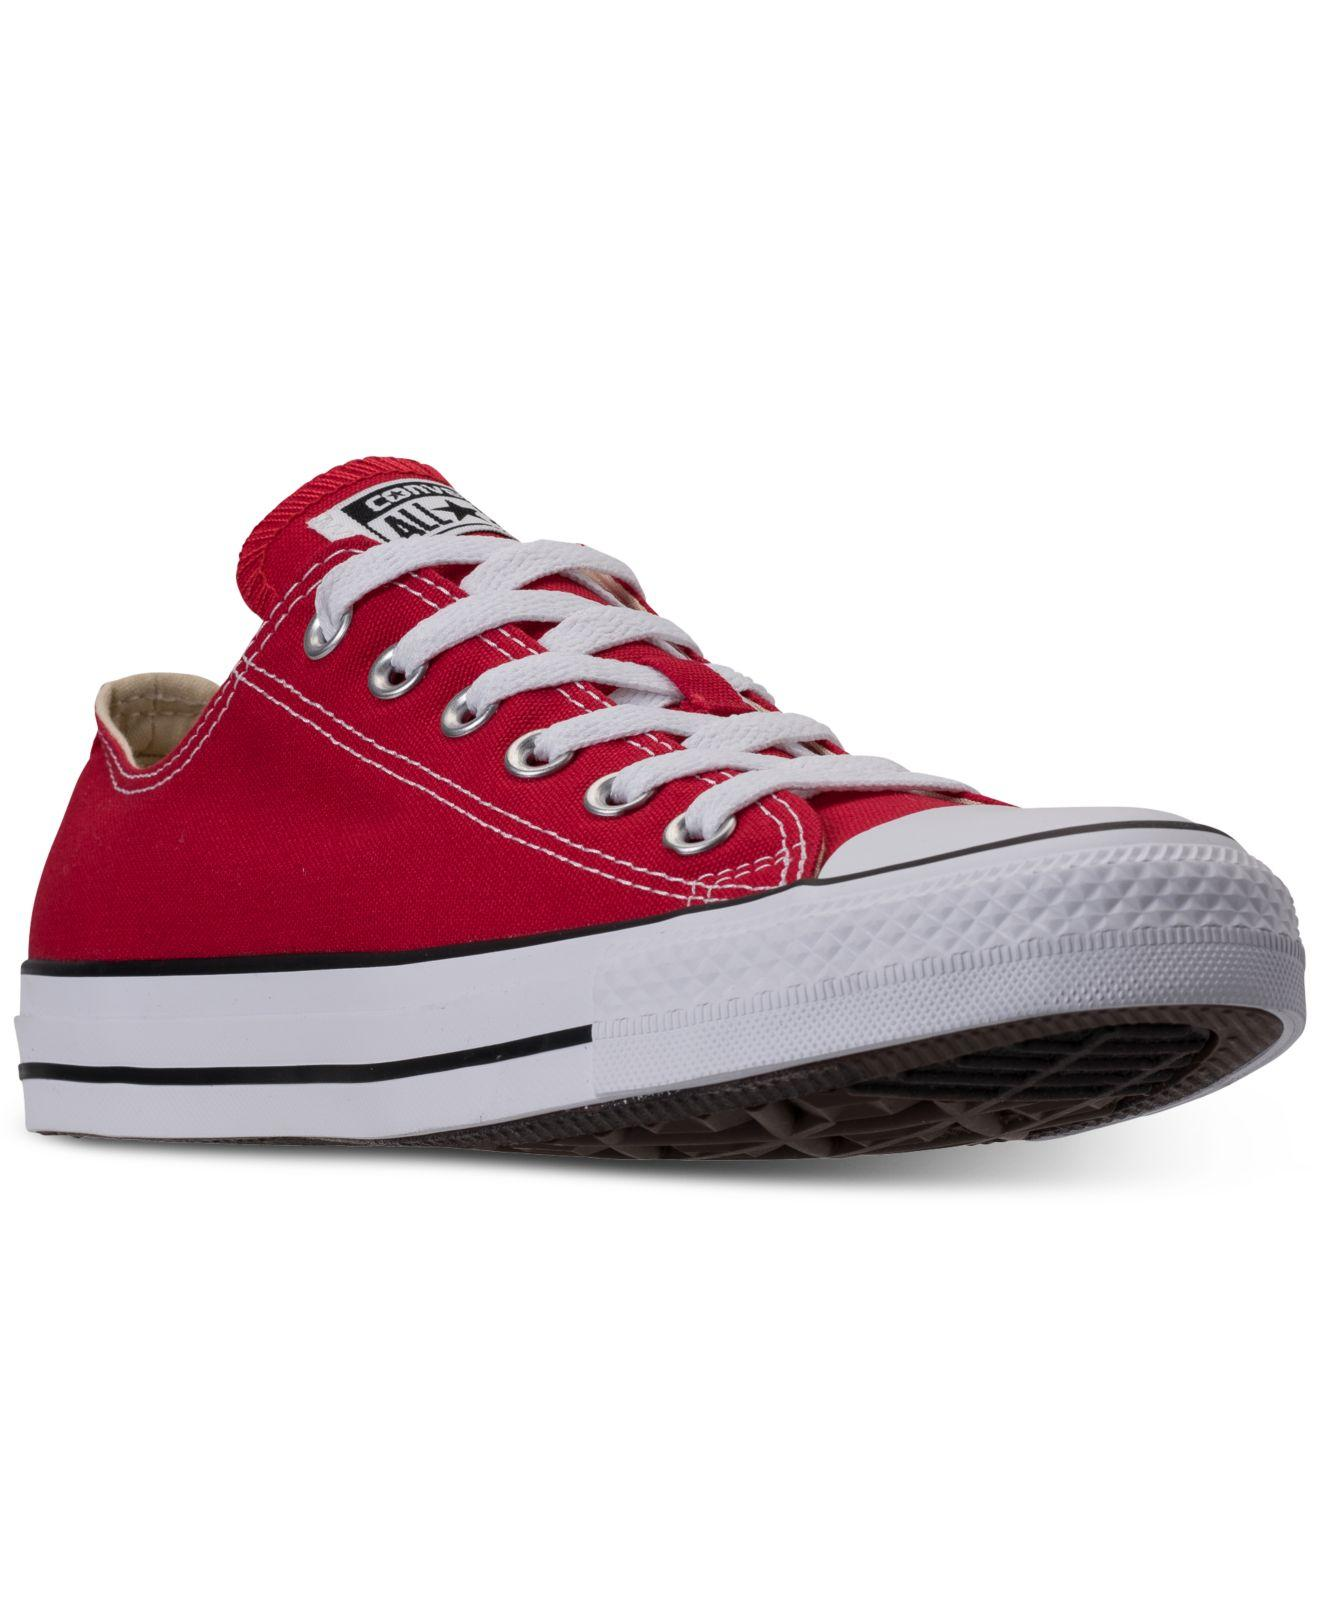 c5f43e8e7964 Lyst - Converse Men s Chuck Taylor All Star Sneakers From Finish Line in Red  for Men